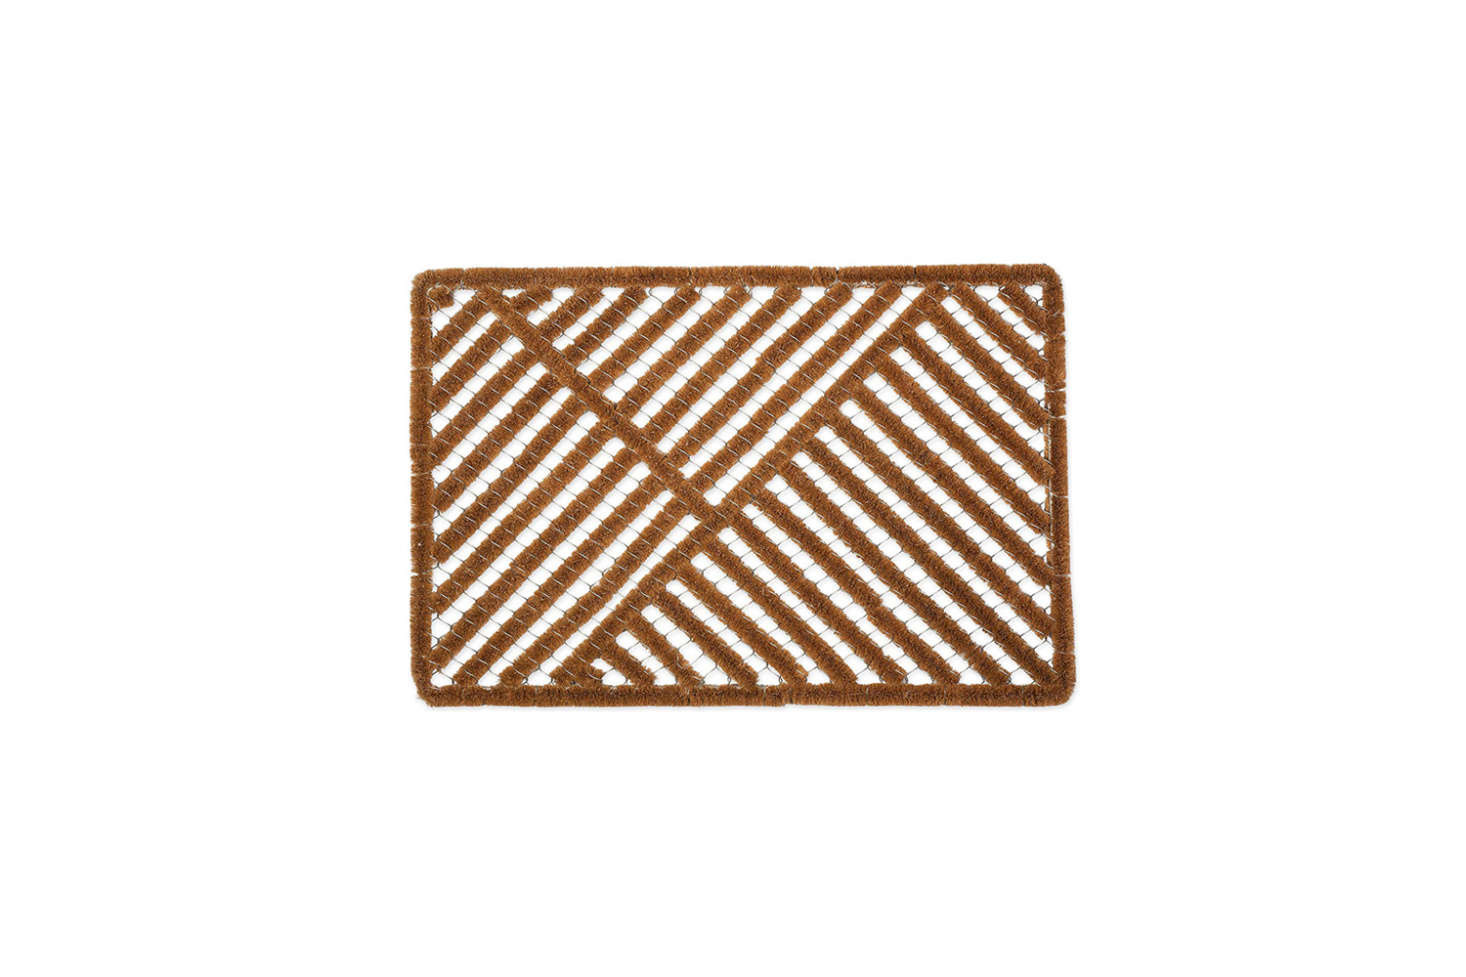 The Natural Coir Outdoor Doormat has coconut fiber embedded into the mesh frame; $.67 at Amazon.